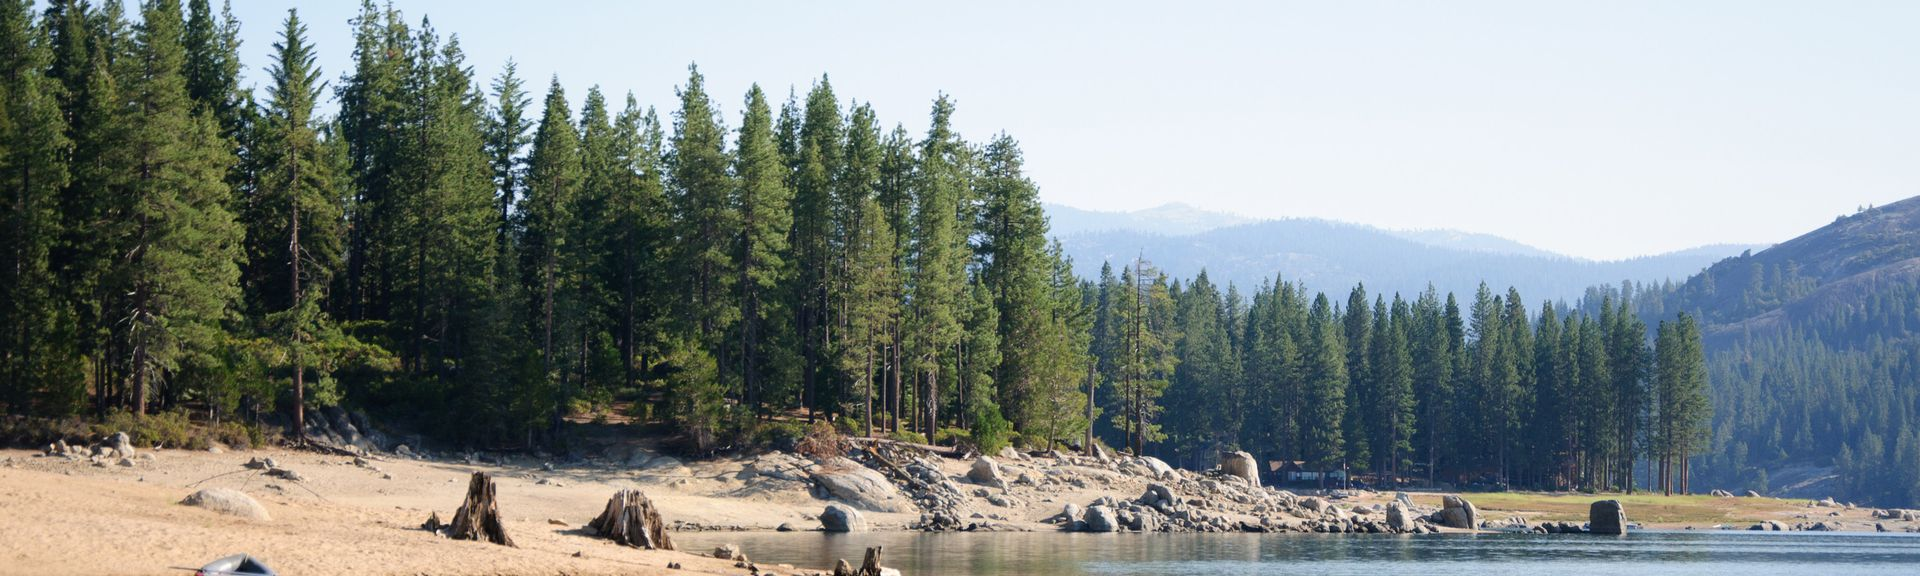 Shaver Lake Ca Vacation Rentals Cabin Rentals More Vrbo